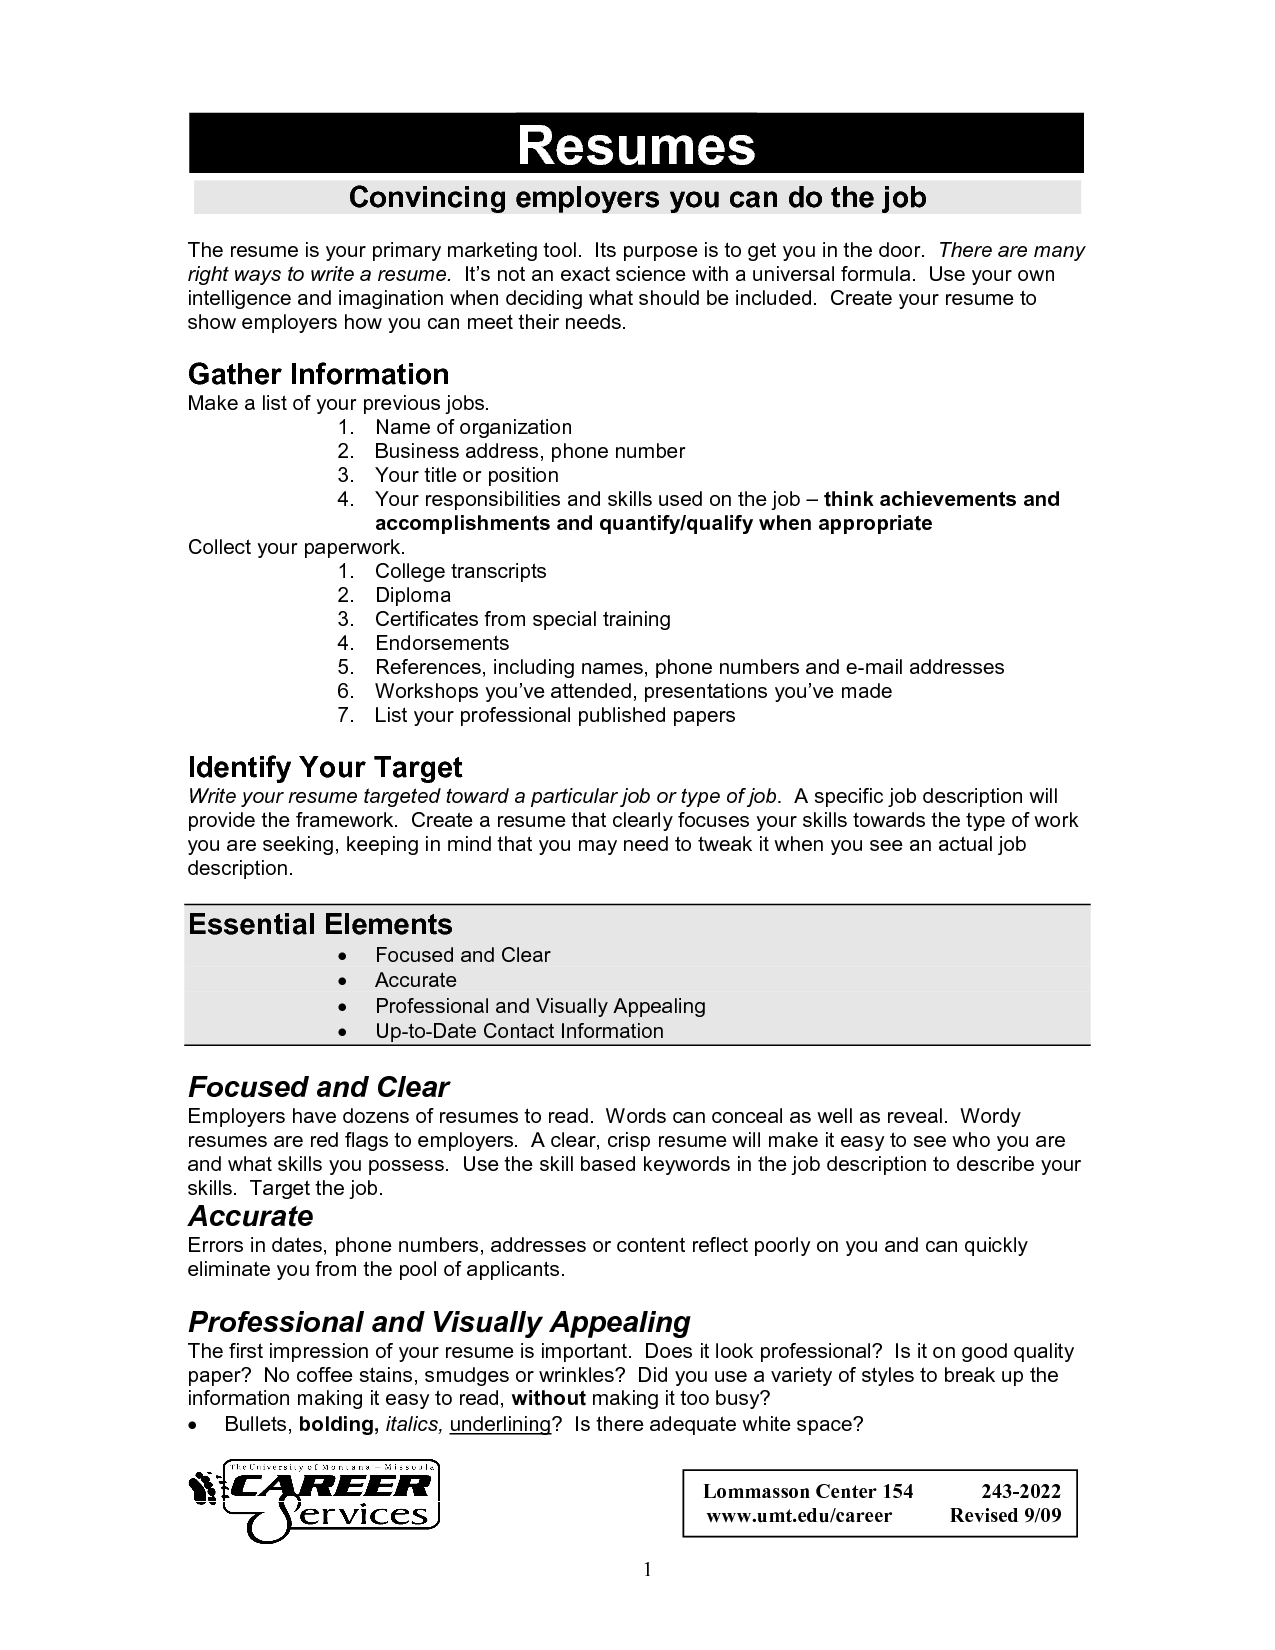 beautiful housekeeping job description gallery guide to the resume duties examples resume cv cover letter - How To Get A Housekeeping Job